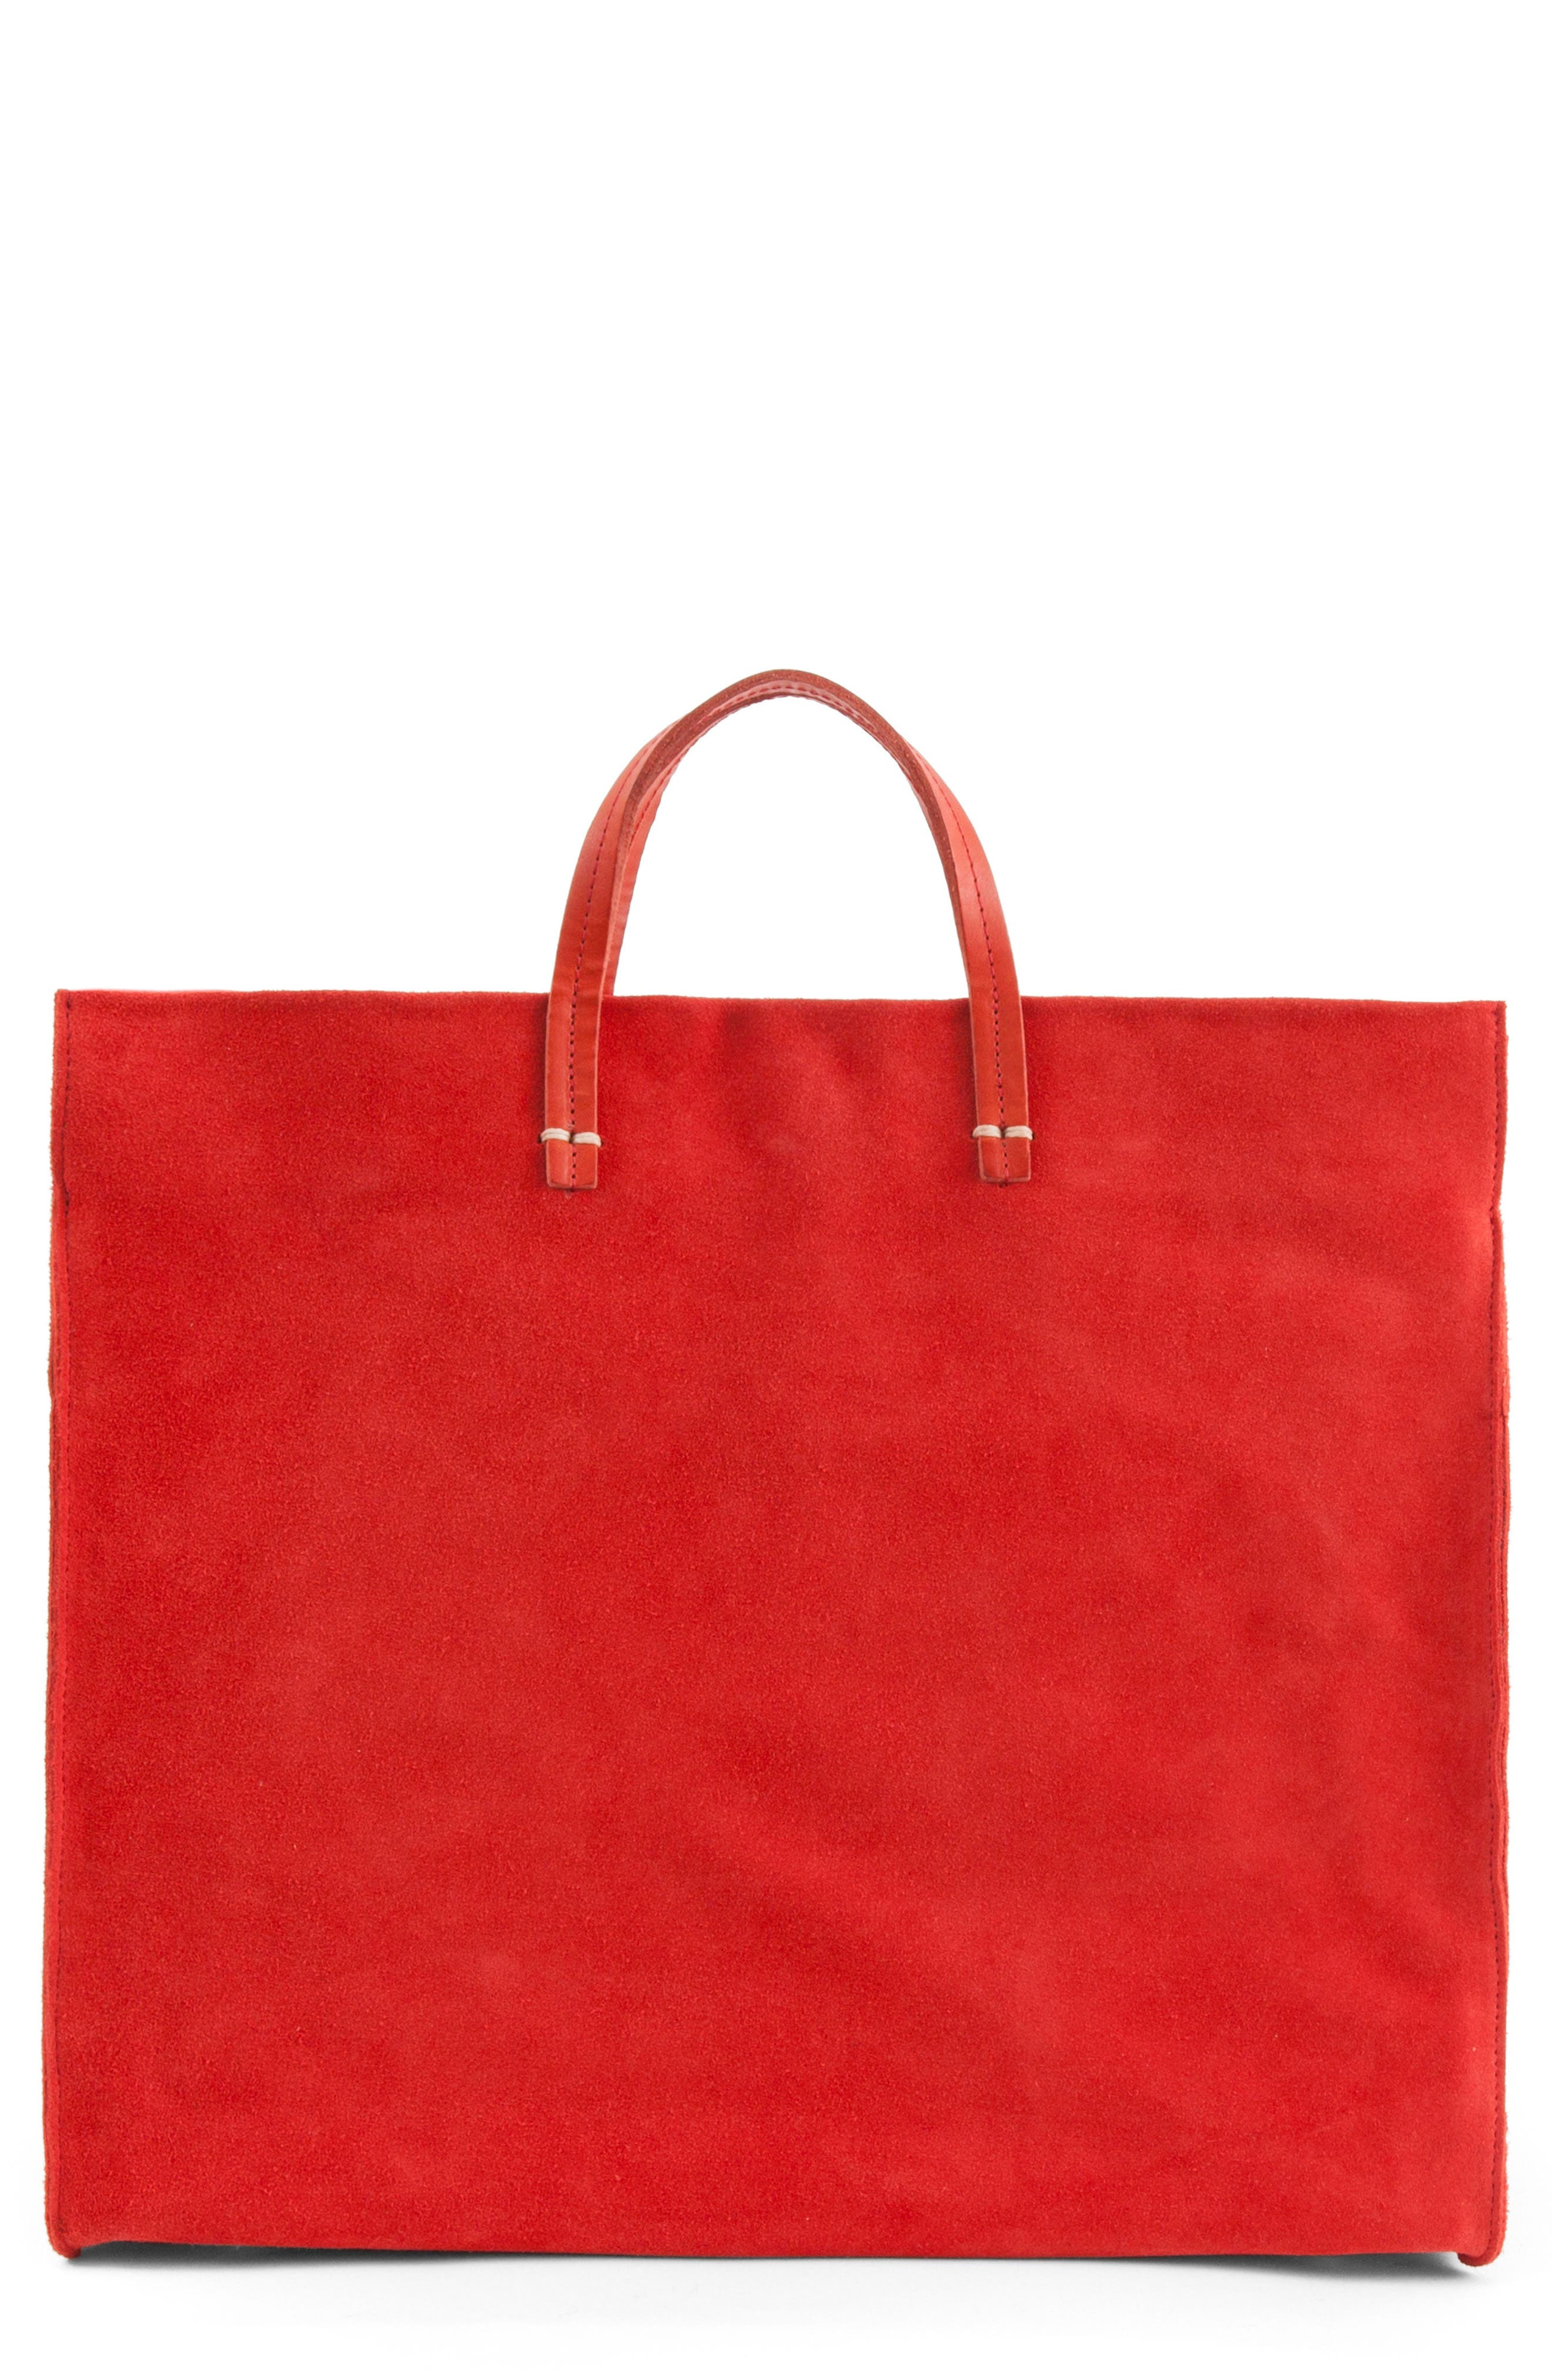 Maison Simple Suede Tote,                         Main,                         color, Red Suede